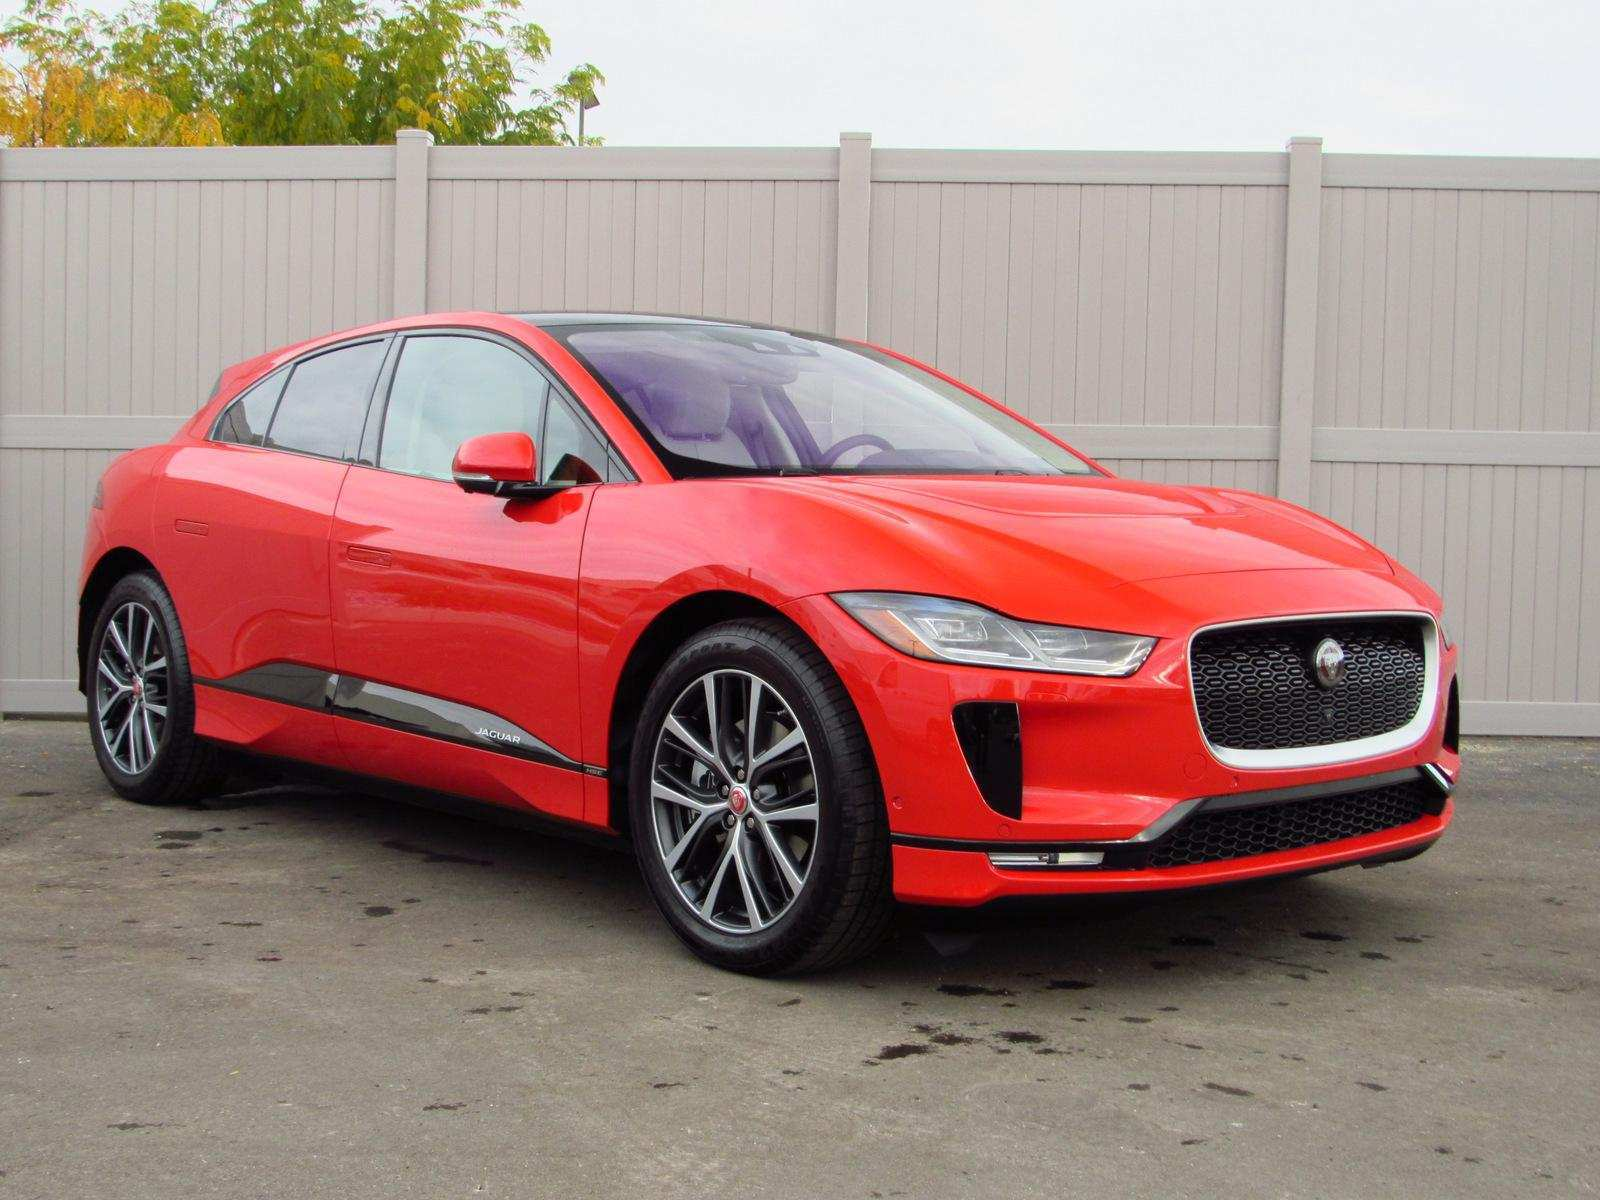 57 The Best 2019 Jaguar I Pace First Edition Review And Release Date